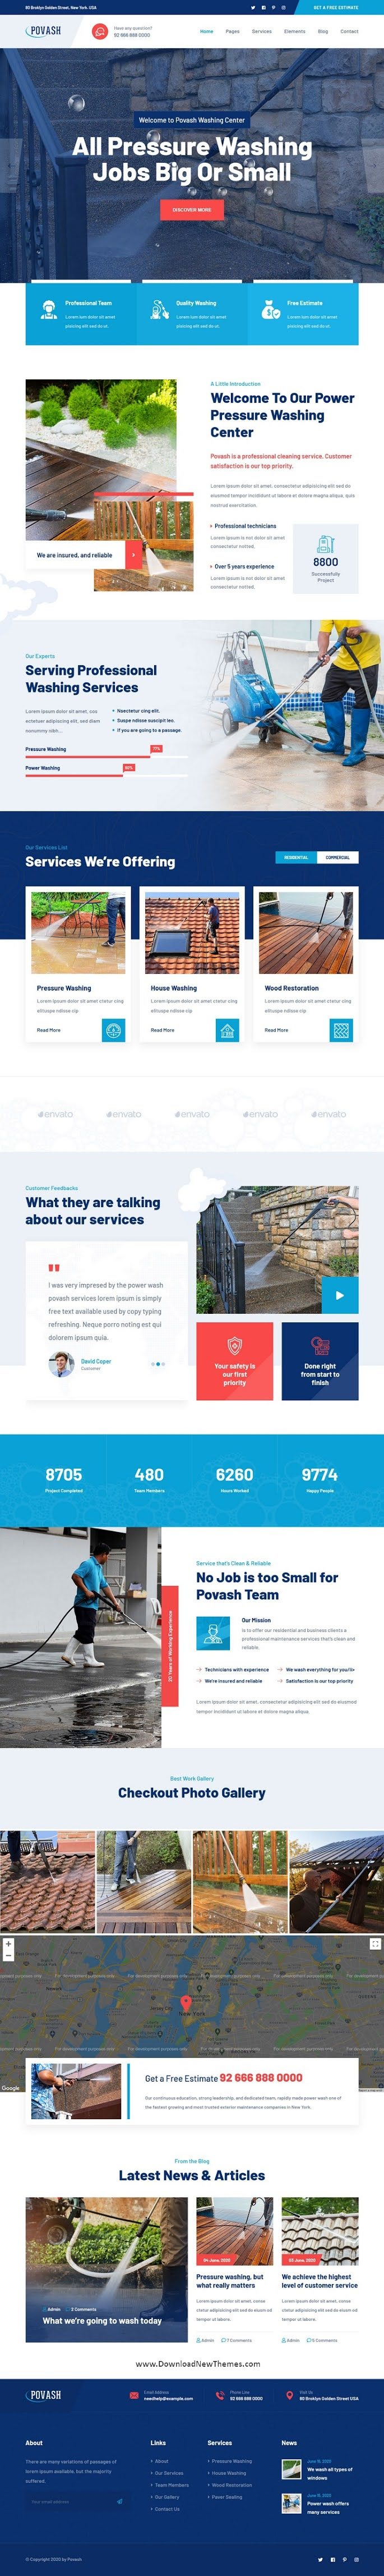 Power Wash Cleaning Services Template